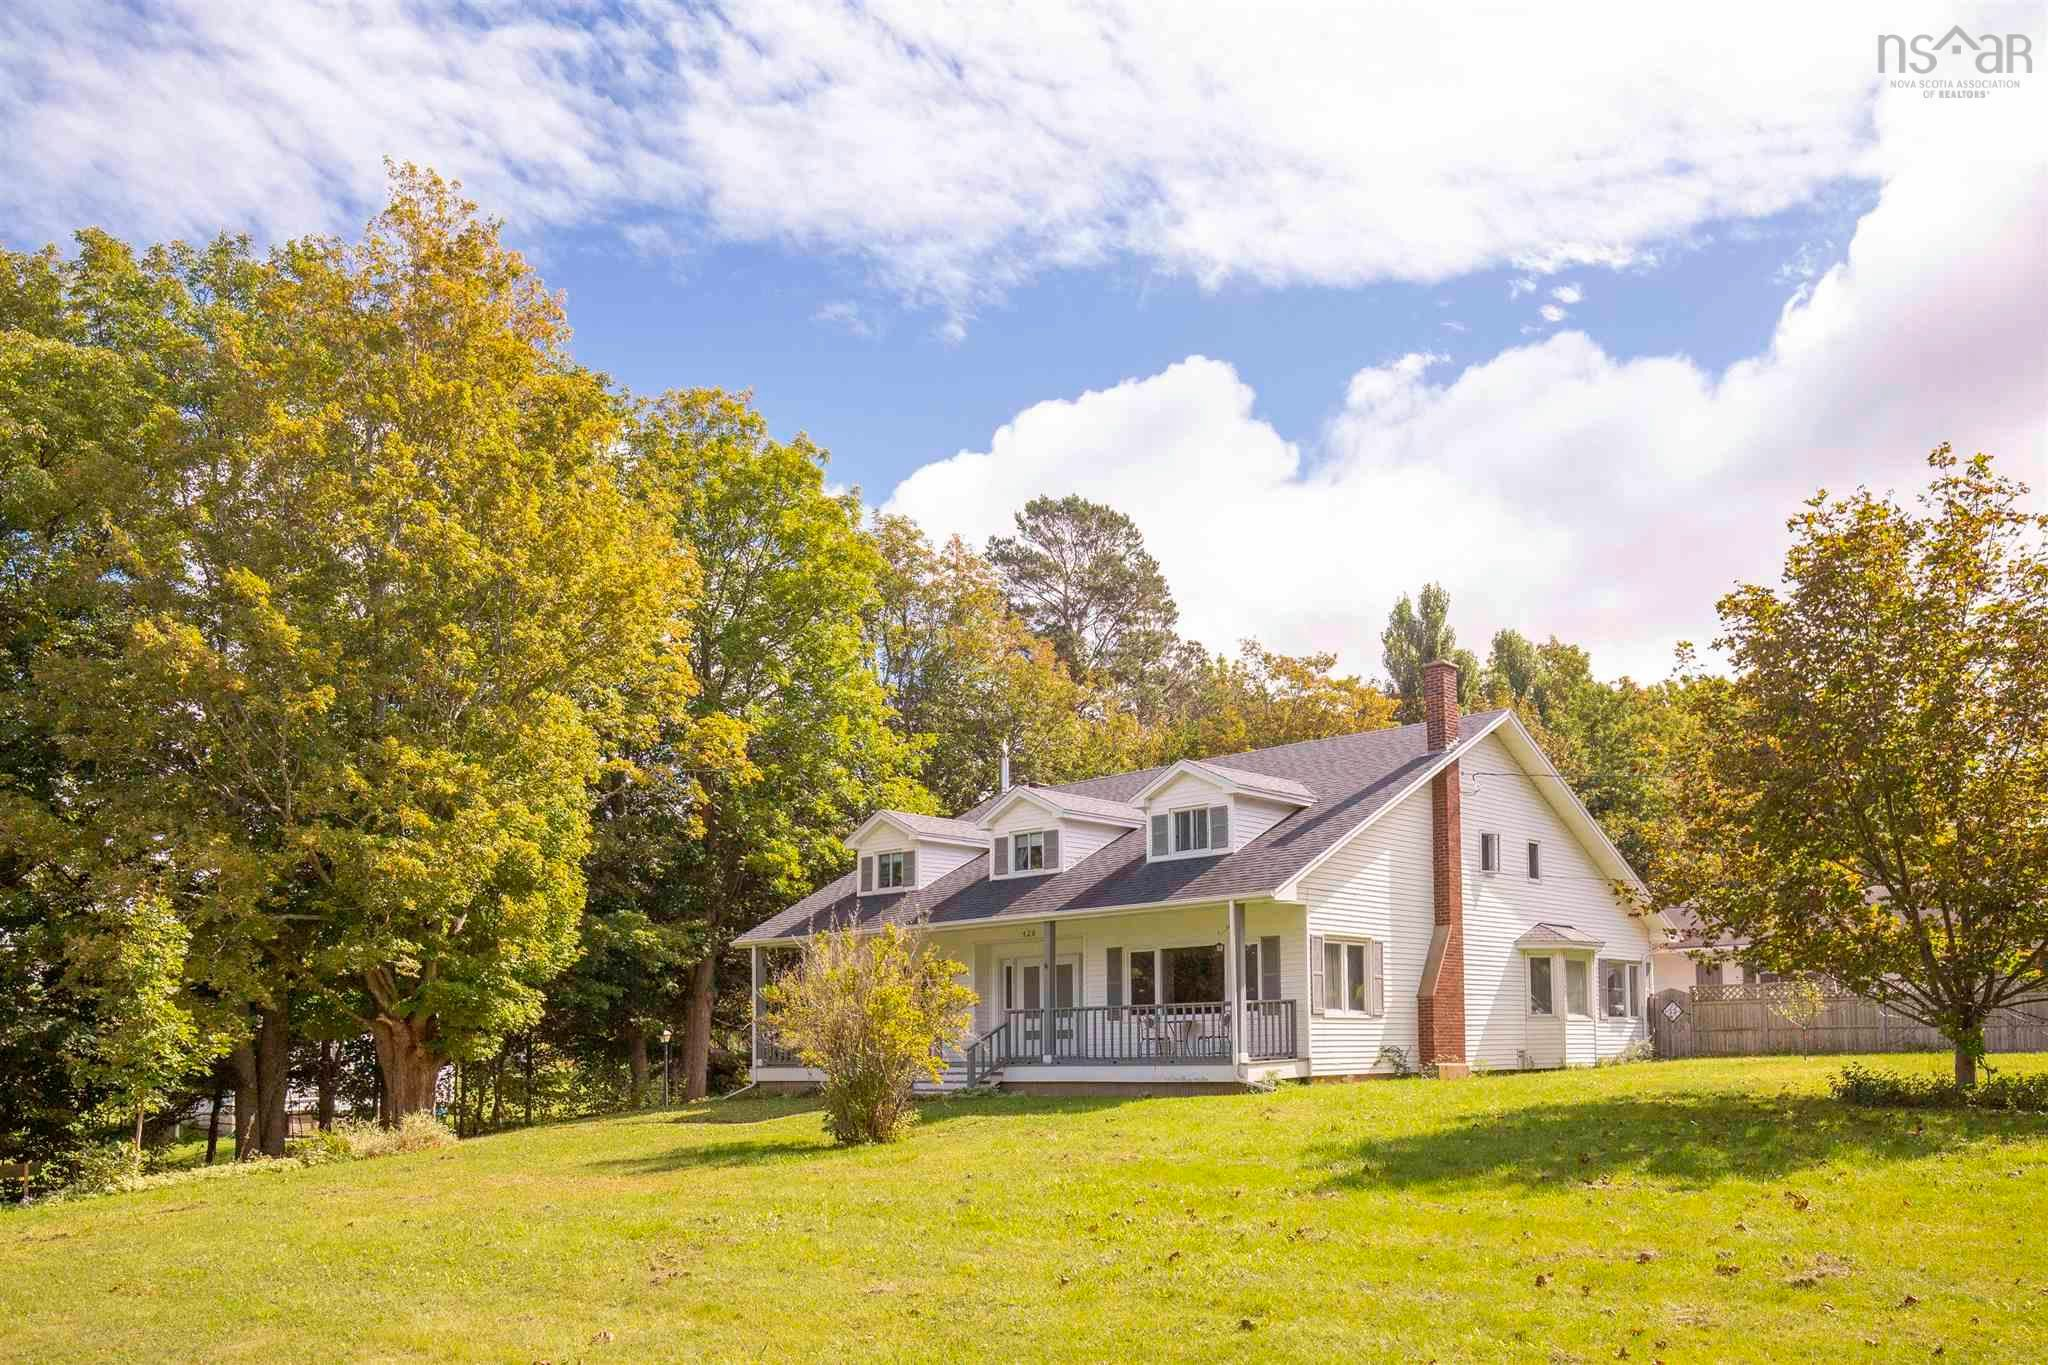 Main Photo: 428 HIGHWAY 1 in Deep Brook: 400-Annapolis County Multi-Family for sale (Annapolis Valley)  : MLS®# 202125513